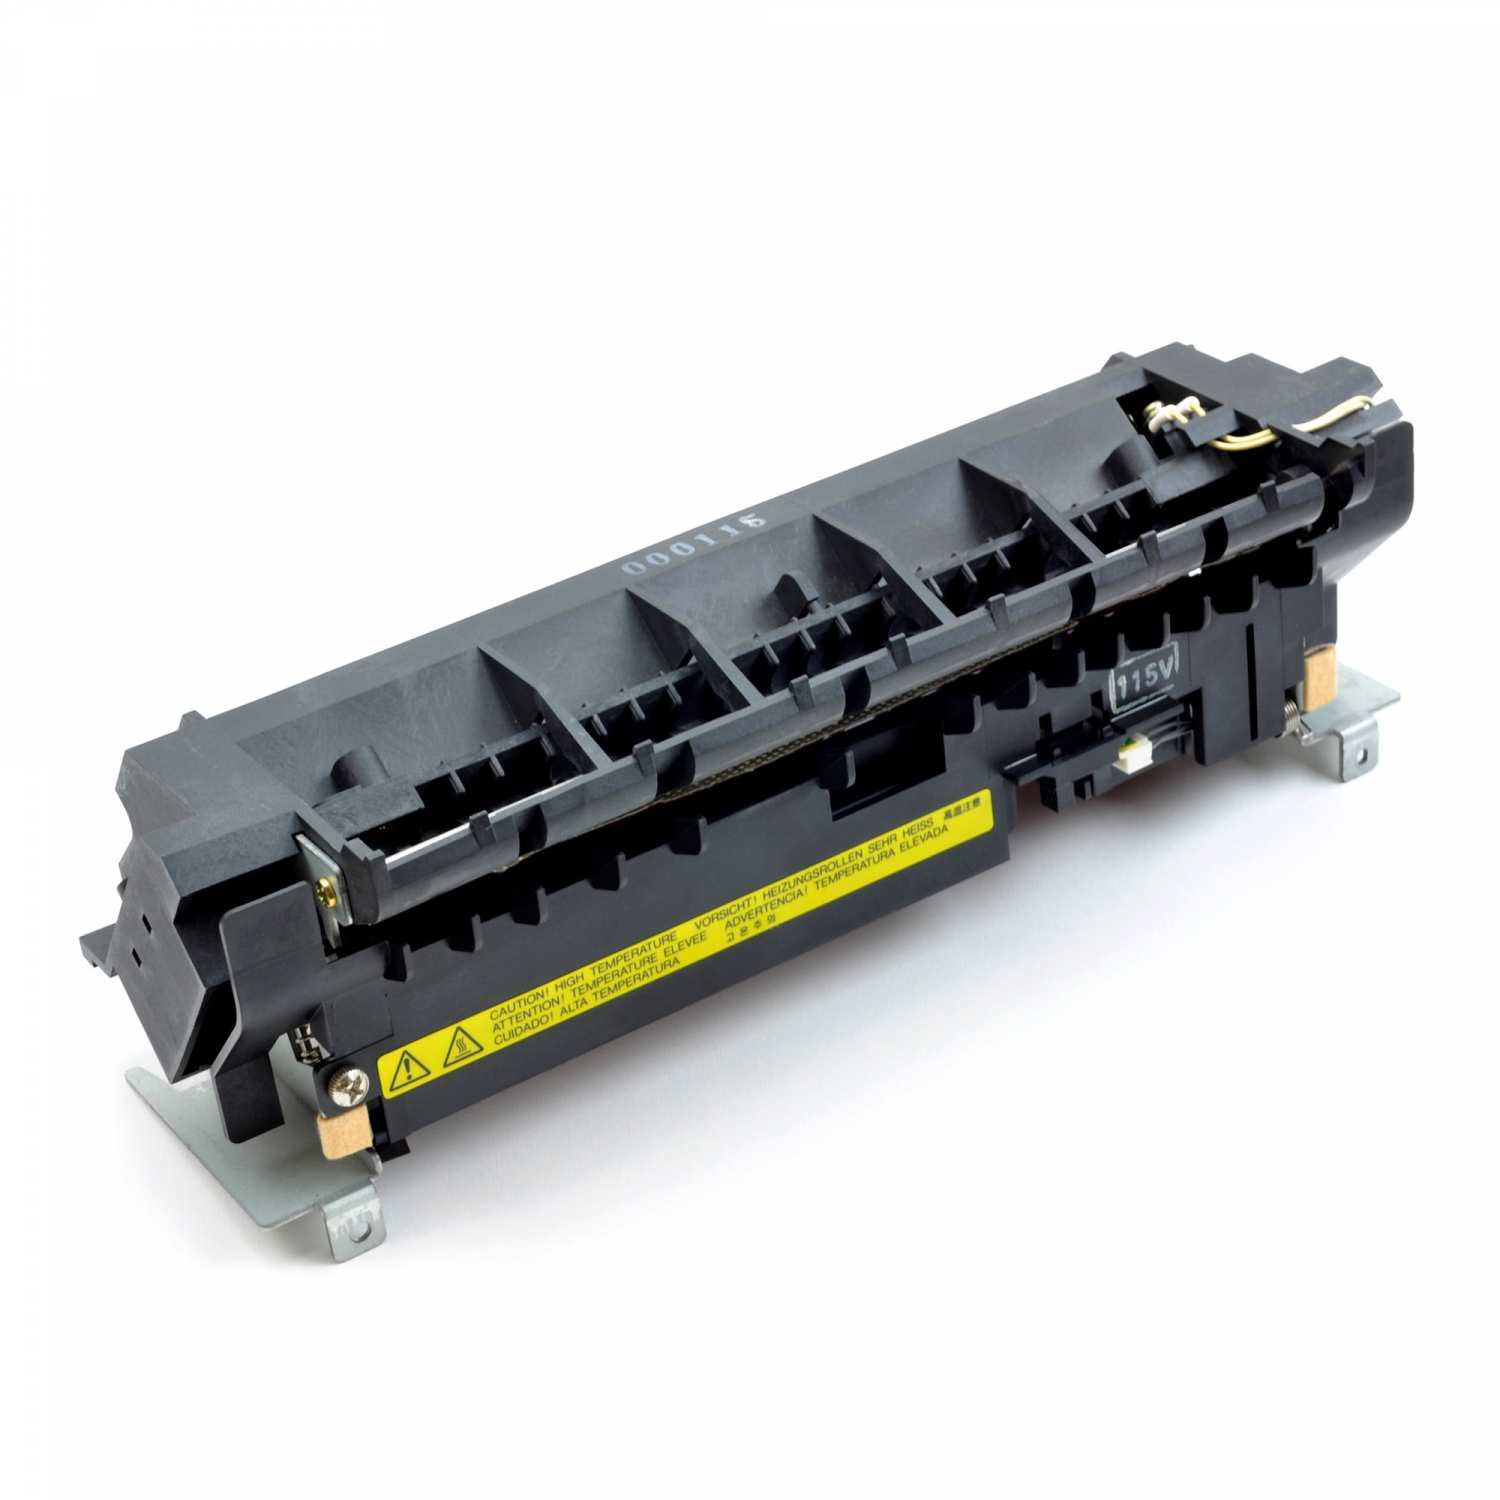 108R00092 Fuser Assembly (110V) Purchase for Xerox 4317, DocuPrint 4517